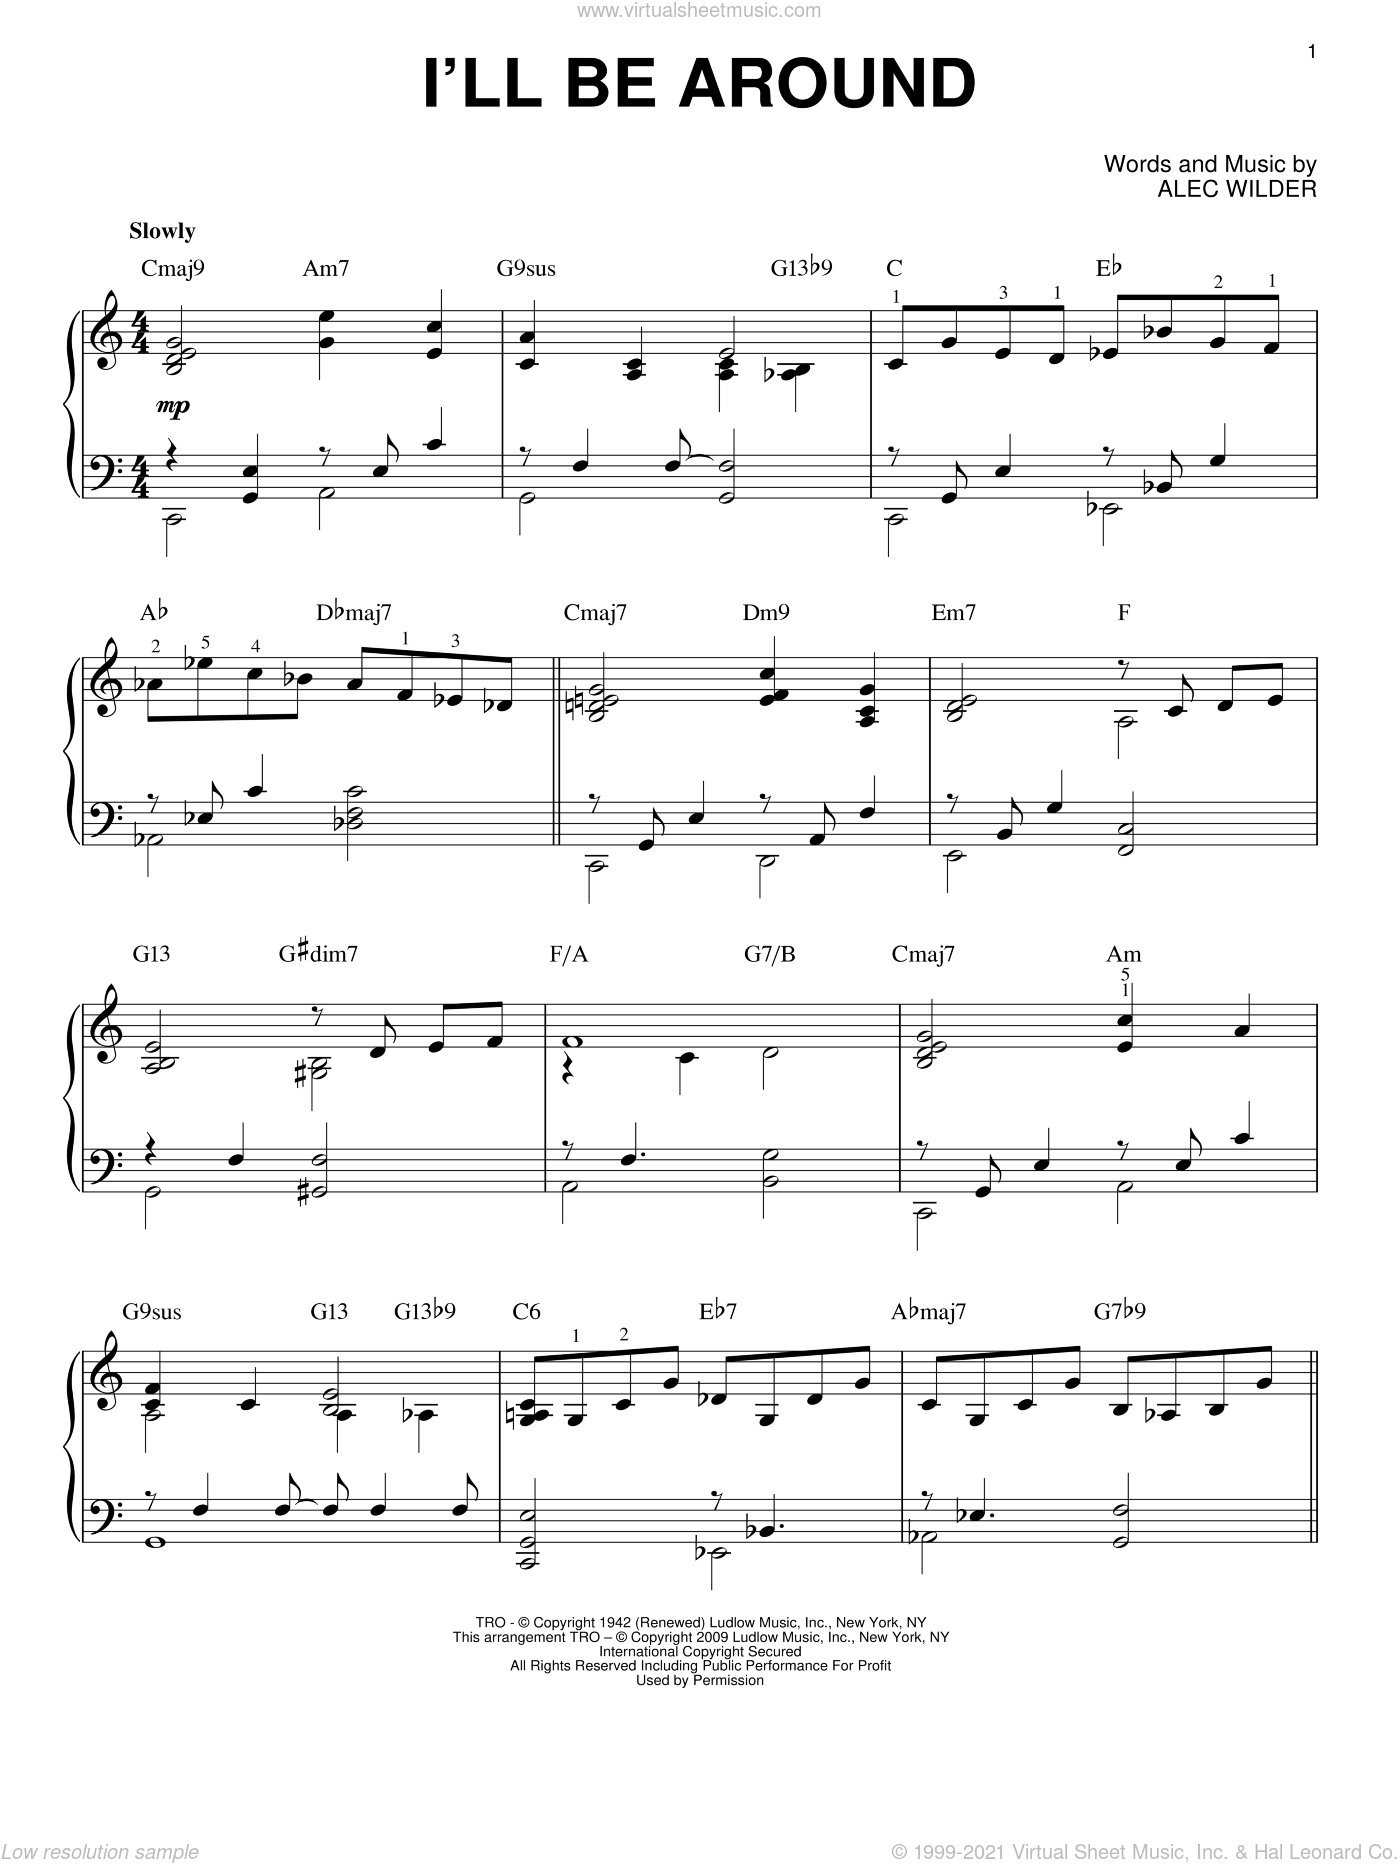 I'll Be Around sheet music for piano solo by Alec Wilder